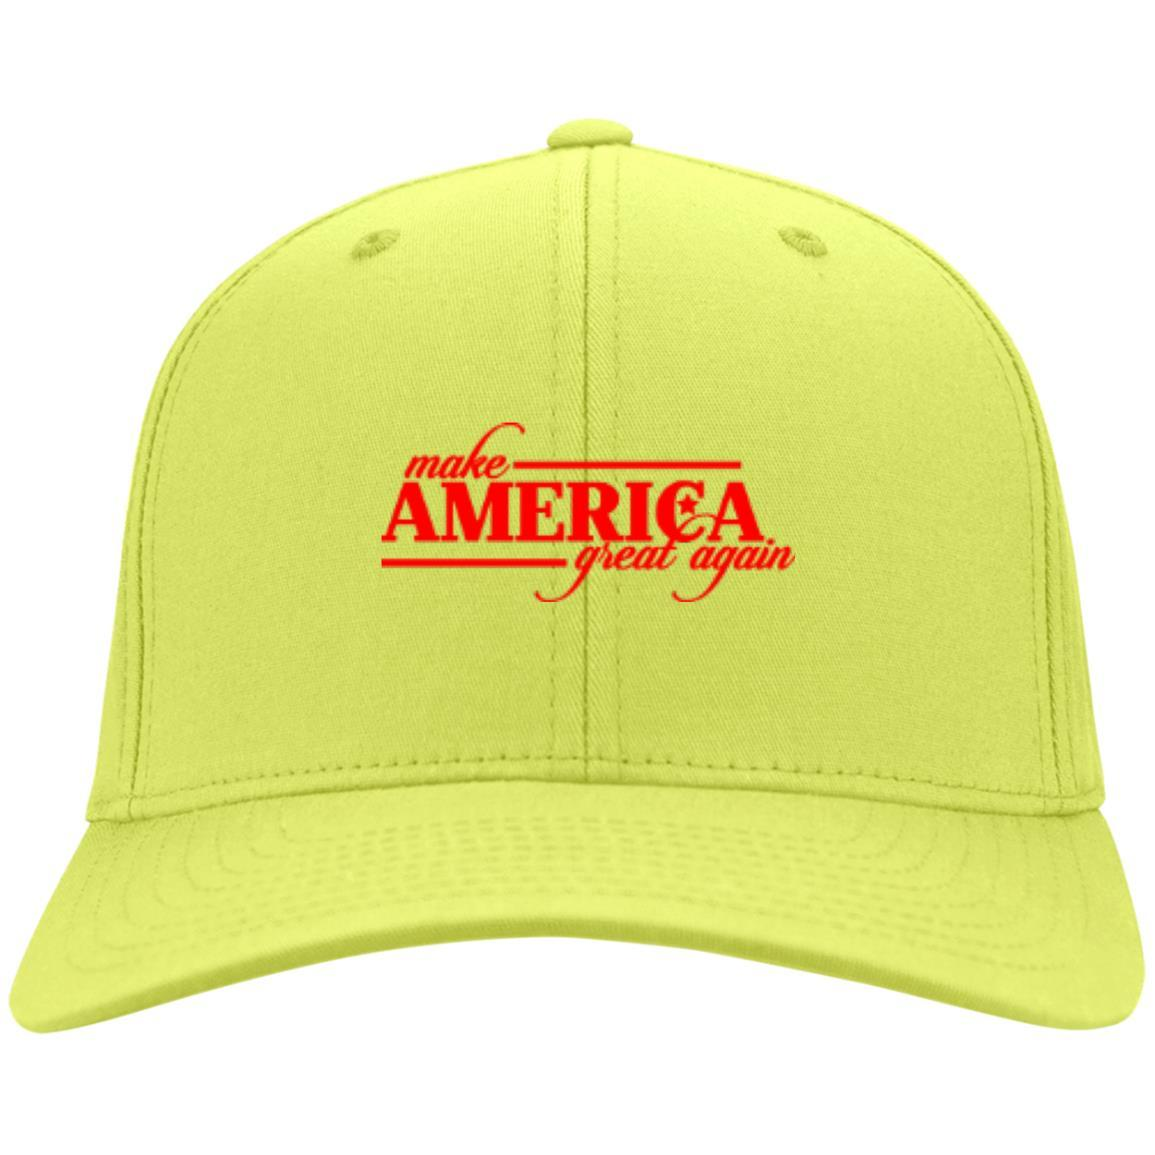 Make America Great Again - Port & Co. Twill Cap Neon Yellow